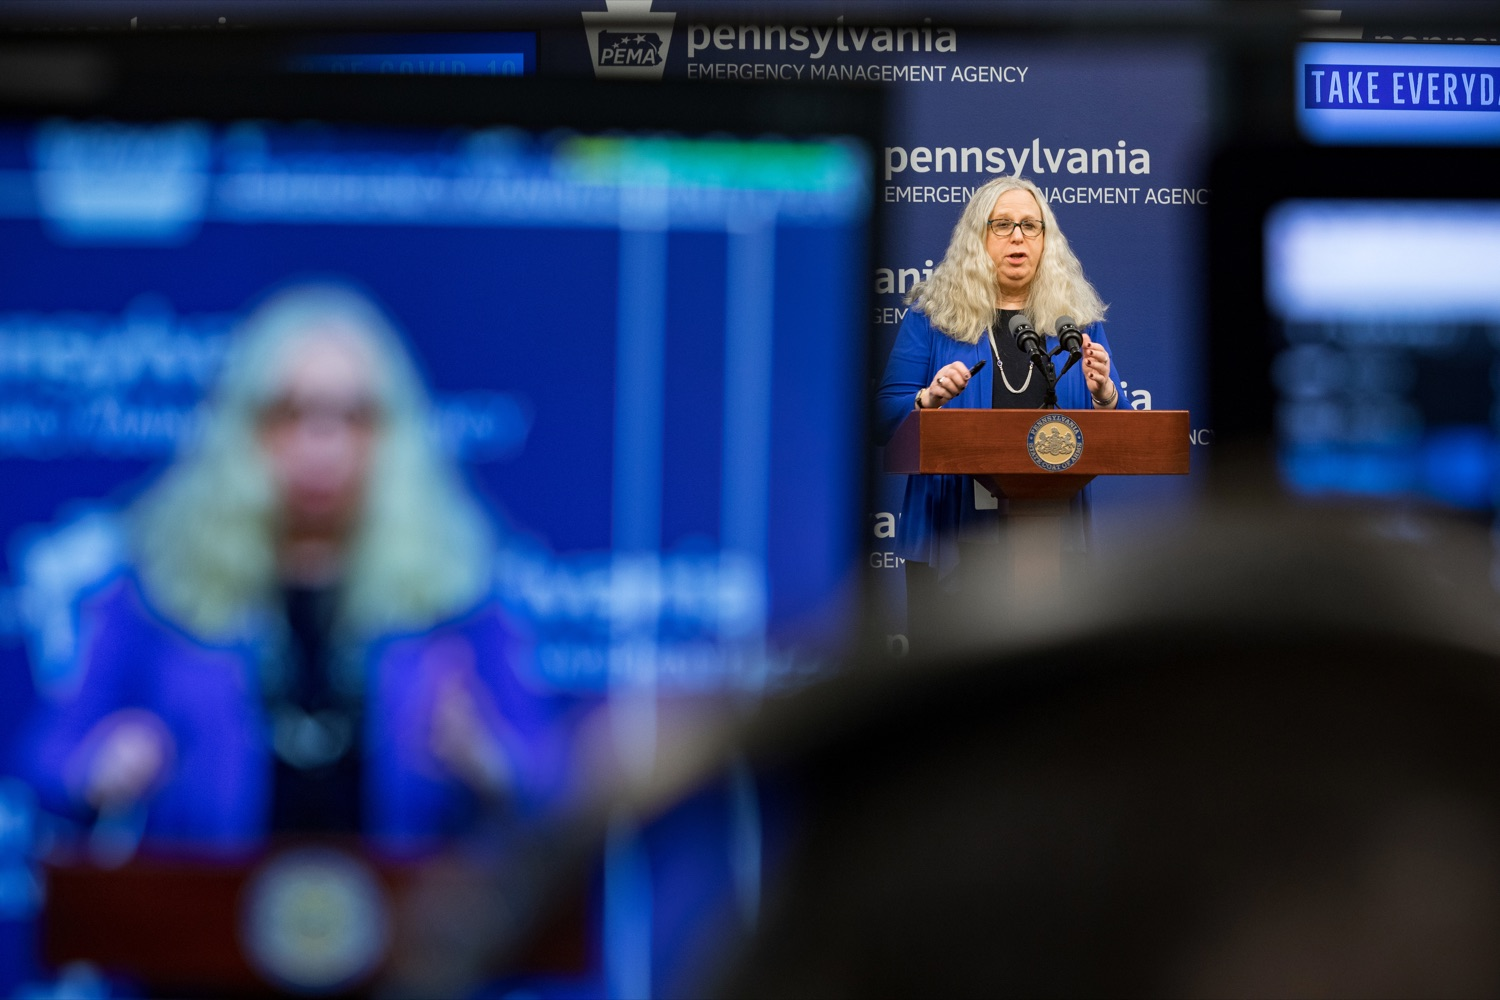 "<a href=""https://filesource.wostreaming.net/commonwealthofpa/photo/17890_DOH_Corona_Update_133_NK_004.jpg"" target=""_blank"">⇣ Download Photo<br></a>Pennsylvania Department of Health Secretary Dr. Rachel Levine speaks during a press conference, announcing the 133rd presumptive positive case of 2019 Novel Coronavirus (COVID-19) in Pennsylvania, inside PEMA headquarters on Wednesday, March 18, 2020."